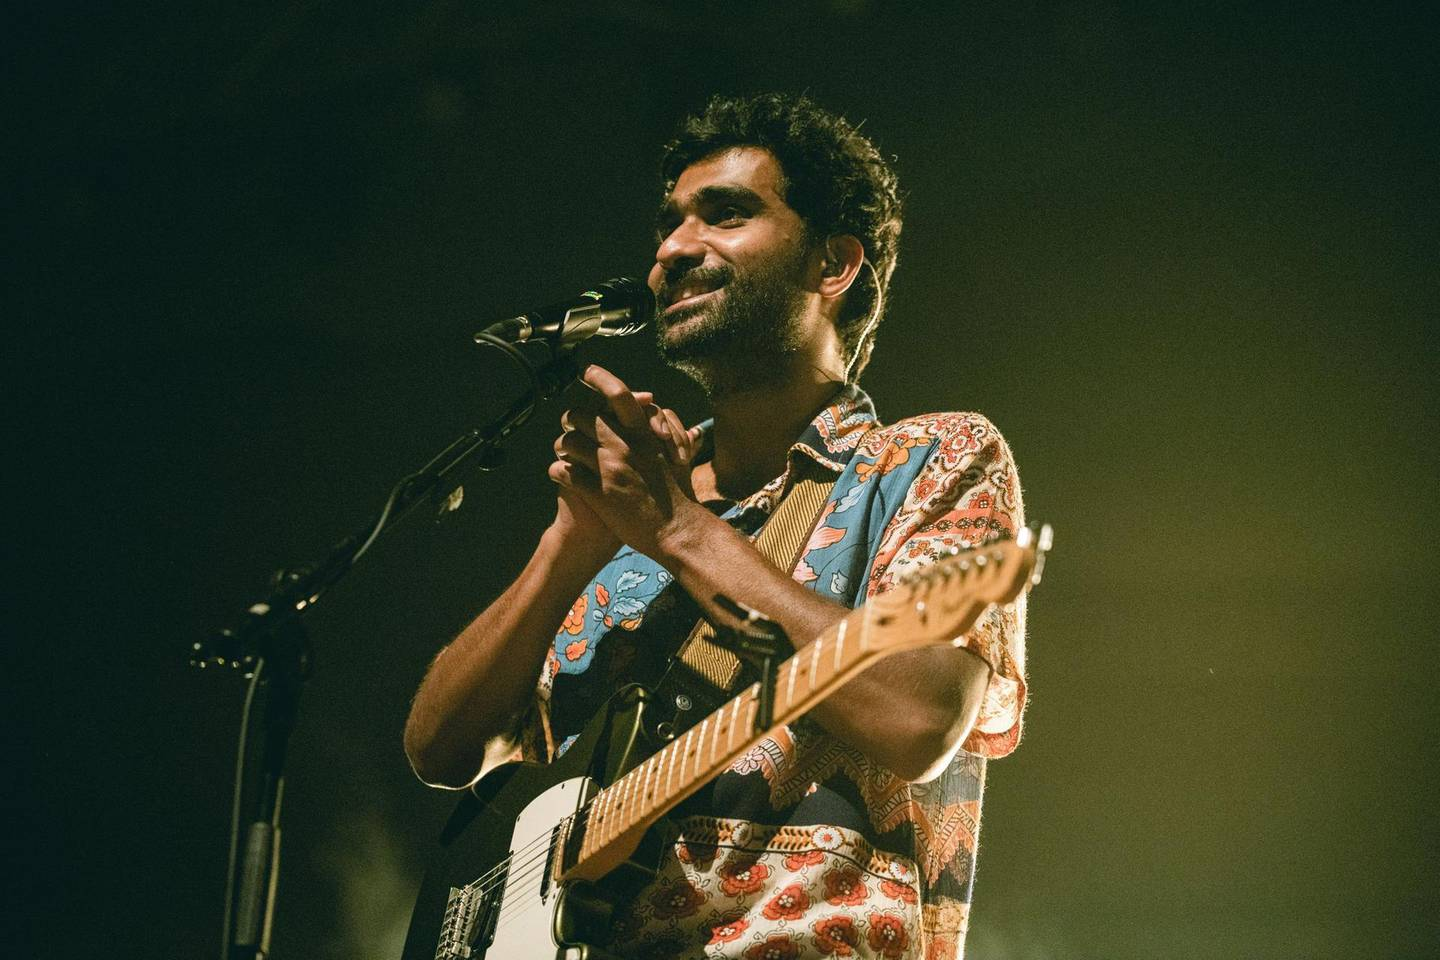 """In this handout photograph taken in December 2019 and released on January 3, 2020, singer Prateek Kuhad reacts as he performs on stage in New Delhi. Starting out, Indian singer Prateek Kuhad gave himself one year to make it. He is still no stranger to self-doubt -- but now even Barack Obama is a fan of his heartbreak-inspired songs.  - RESTRICTED TO EDITORIAL USE - MANDATORY CREDIT """"AFP PHOTO / Prashin Jagger"""" - NO MARKETING NO ADVERTISING CAMPAIGNS - DISTRIBUTED AS A SERVICE TO CLIENTS --- NO ARCHIVE --- To go with 'INDIA-MUSIC-CELEBRITY-KUHAD-OBAMA' by Aishwarya Kumar  / AFP / Prashin Jagger / RESTRICTED TO EDITORIAL USE - MANDATORY CREDIT """"AFP PHOTO / Prashin Jagger"""" - NO MARKETING NO ADVERTISING CAMPAIGNS - DISTRIBUTED AS A SERVICE TO CLIENTS --- NO ARCHIVE --- To go with 'INDIA-MUSIC-CELEBRITY-KUHAD-OBAMA' by Aishwarya Kumar"""